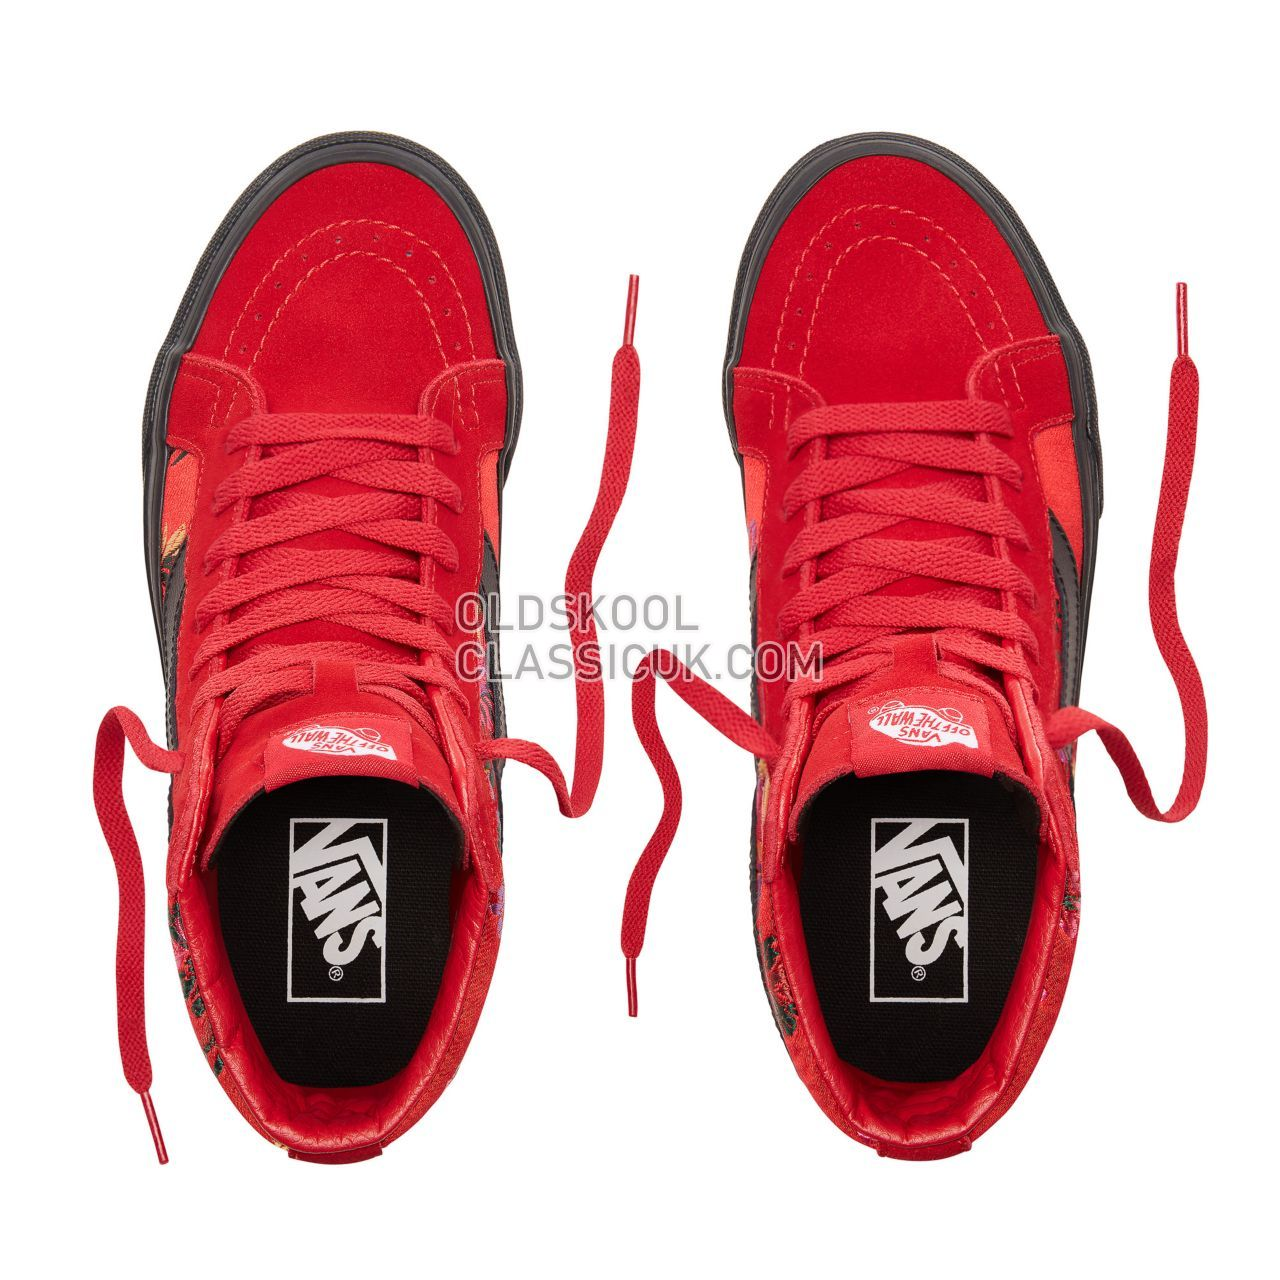 Vans Festival Satin Sk8-Hi Reissue Sneakers Womens (Festival Satin) Red/Black VN0A2XSBULP Shoes